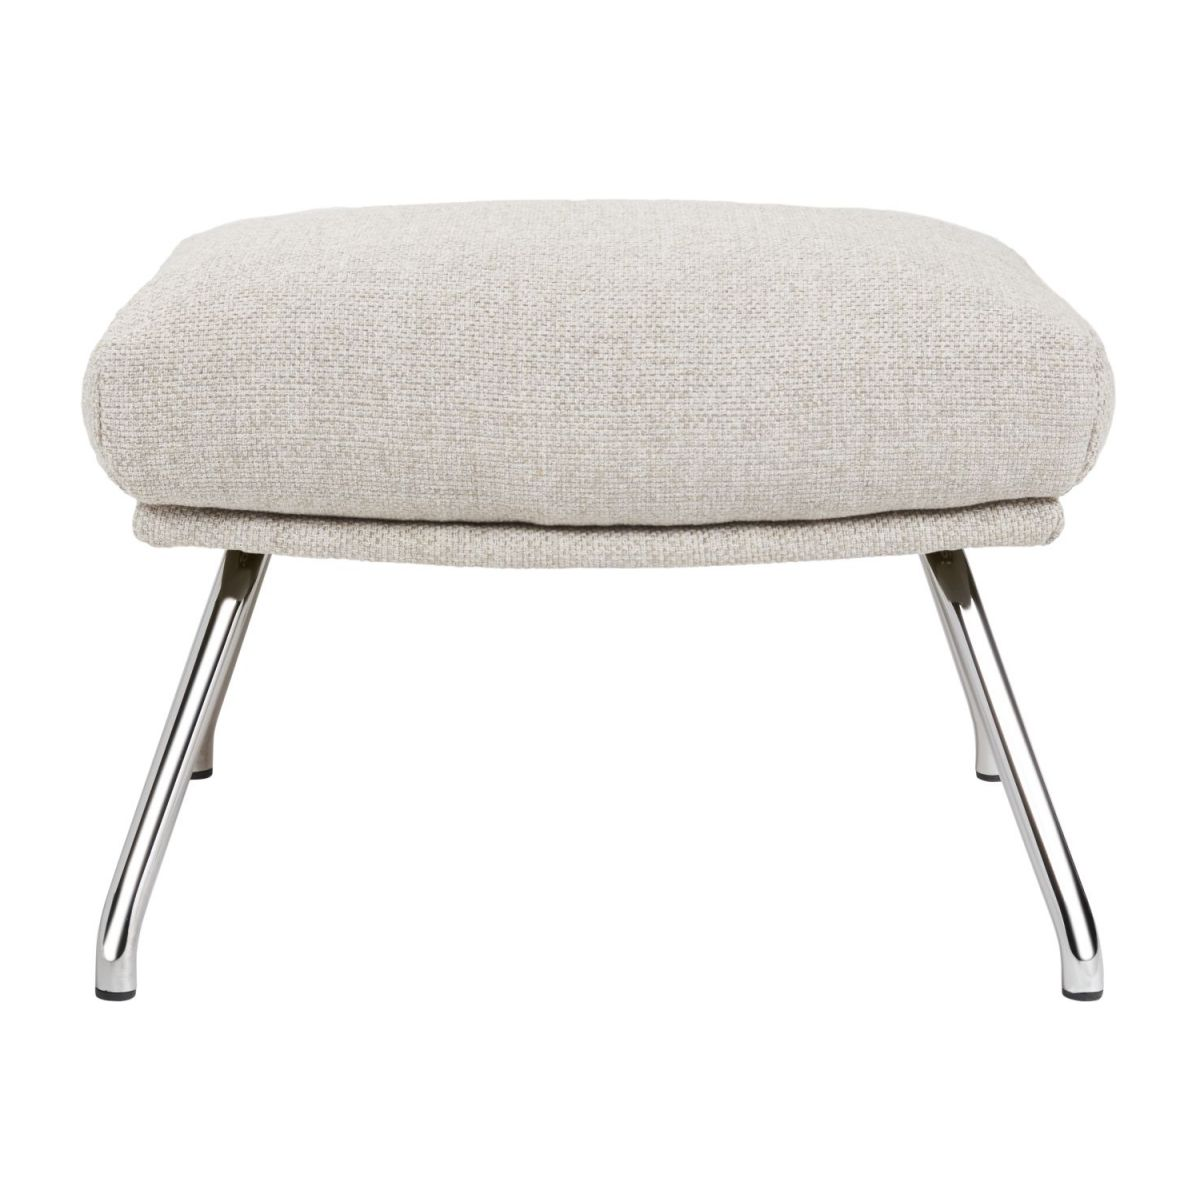 Footstool in Lecce fabric, nature with chromed metal legs n°2